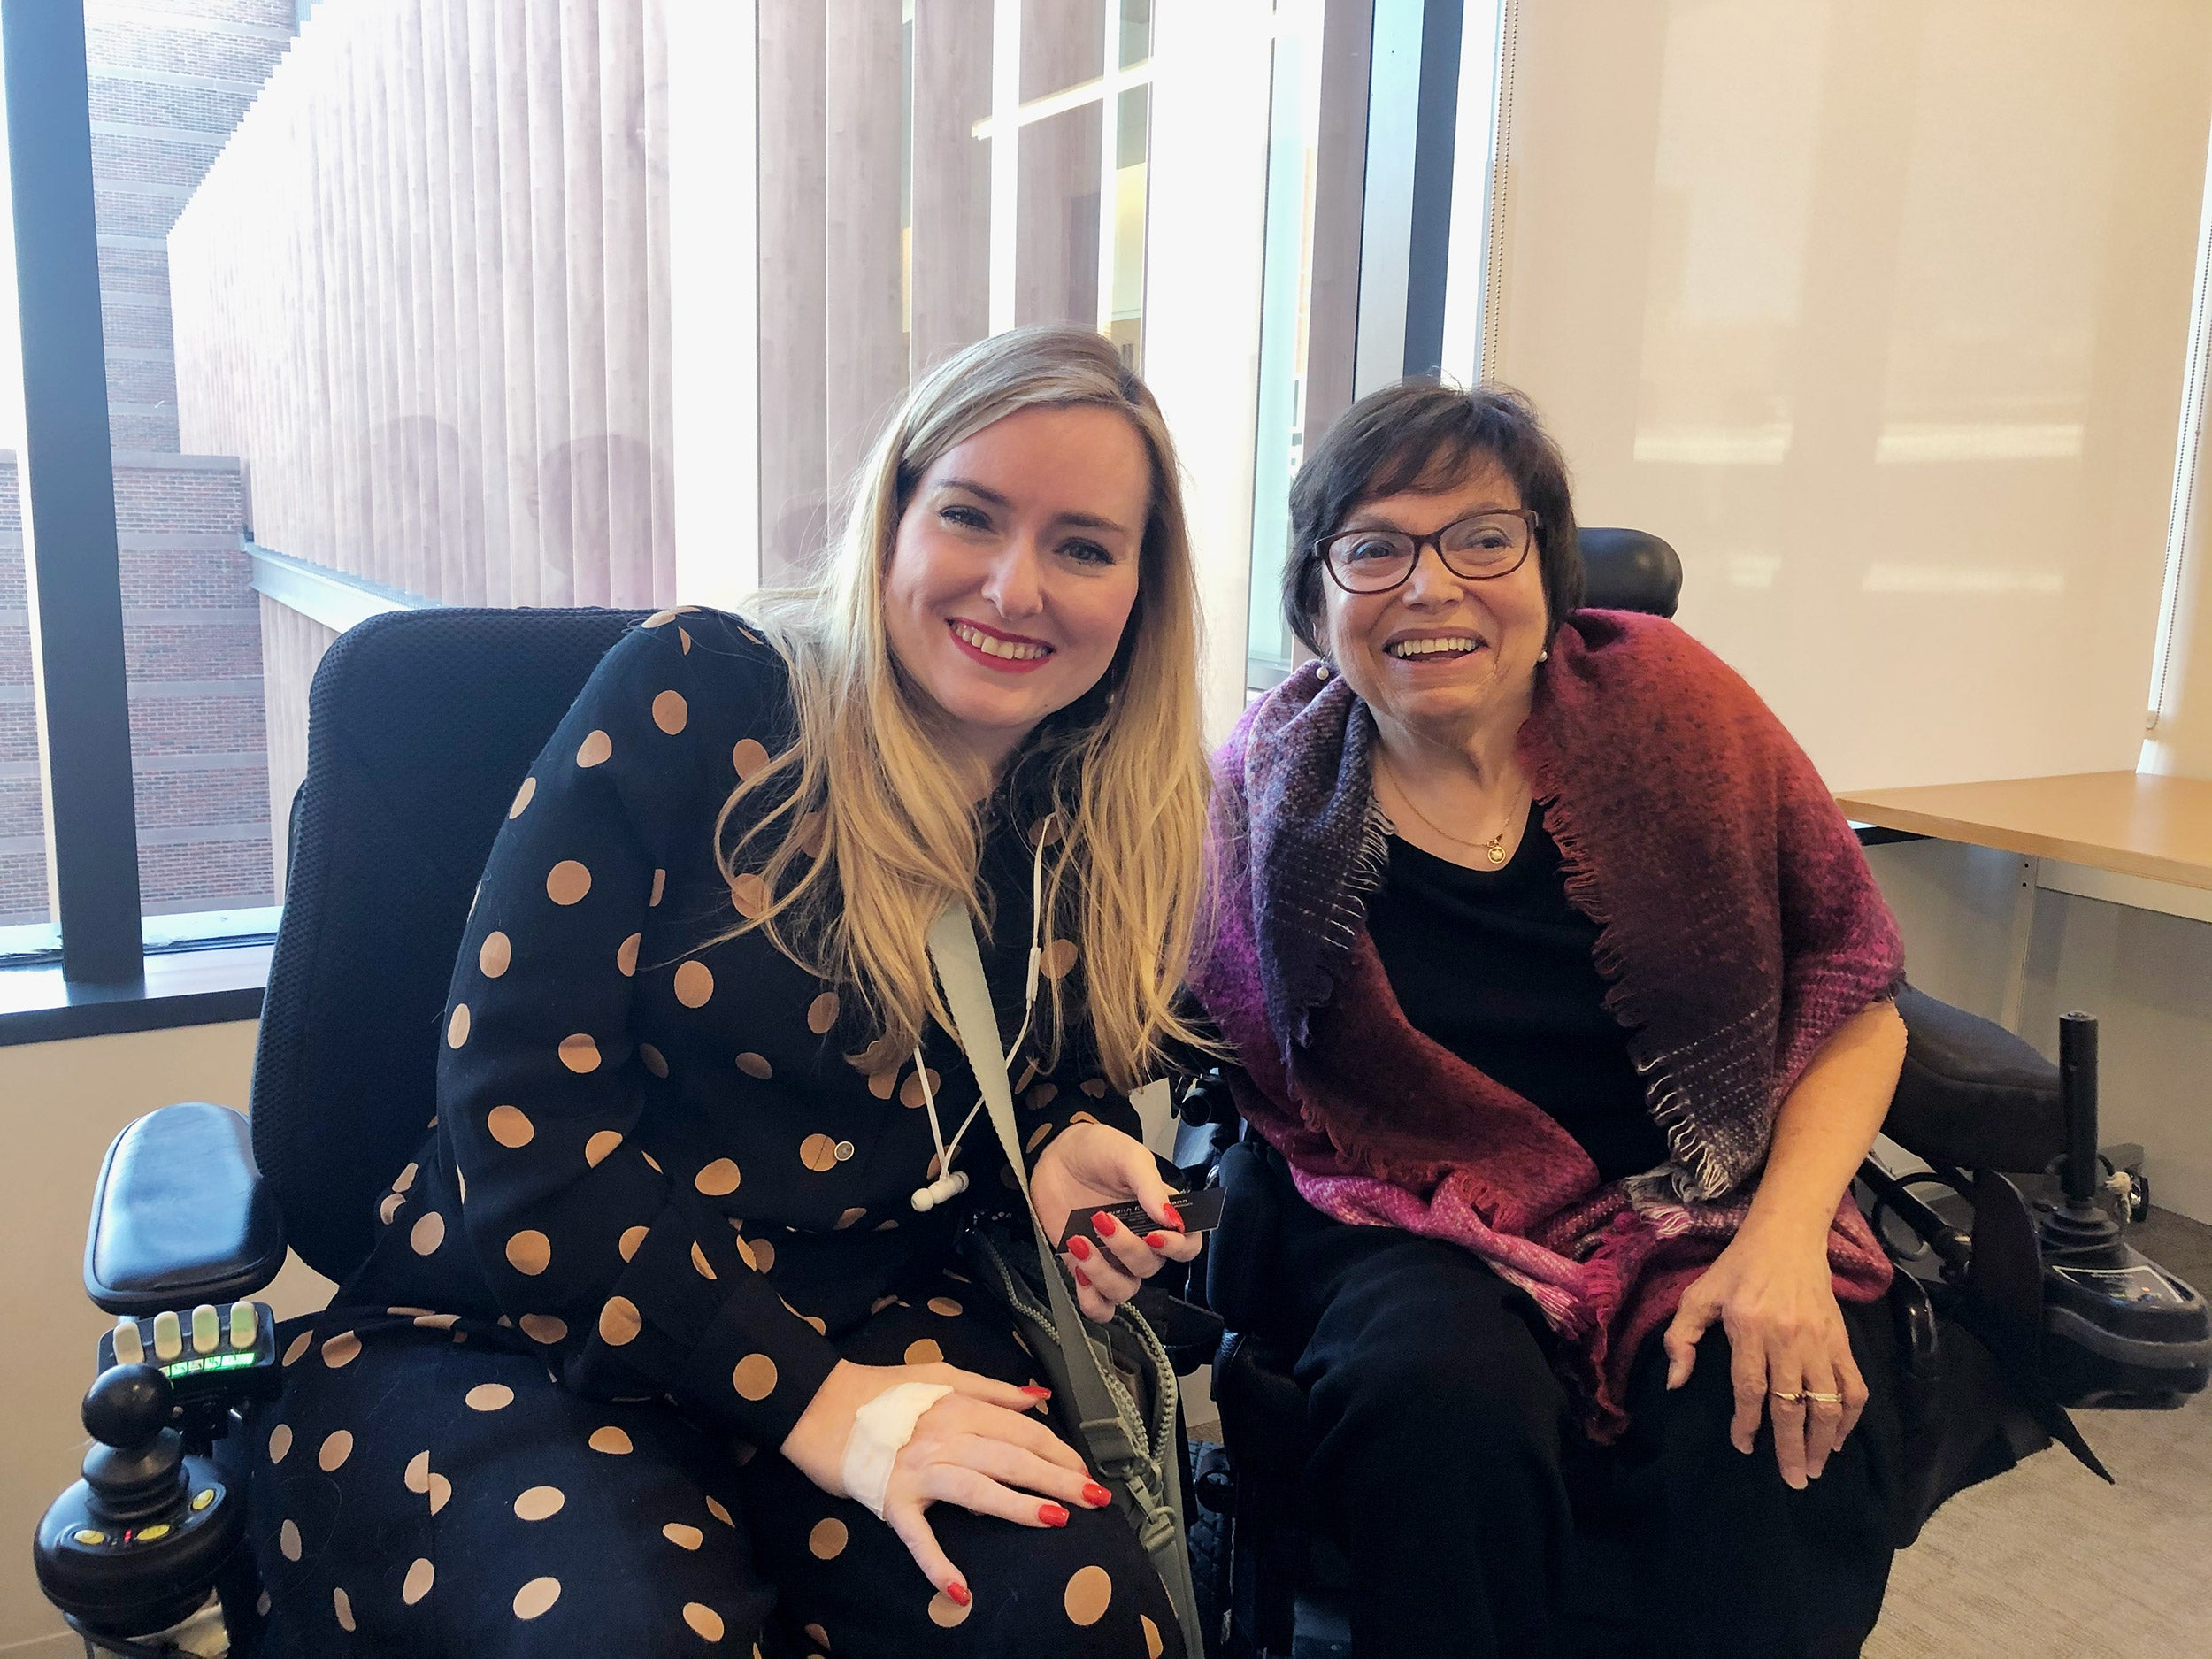 Ariella Barker with international disability rights activist Judith Heumann.